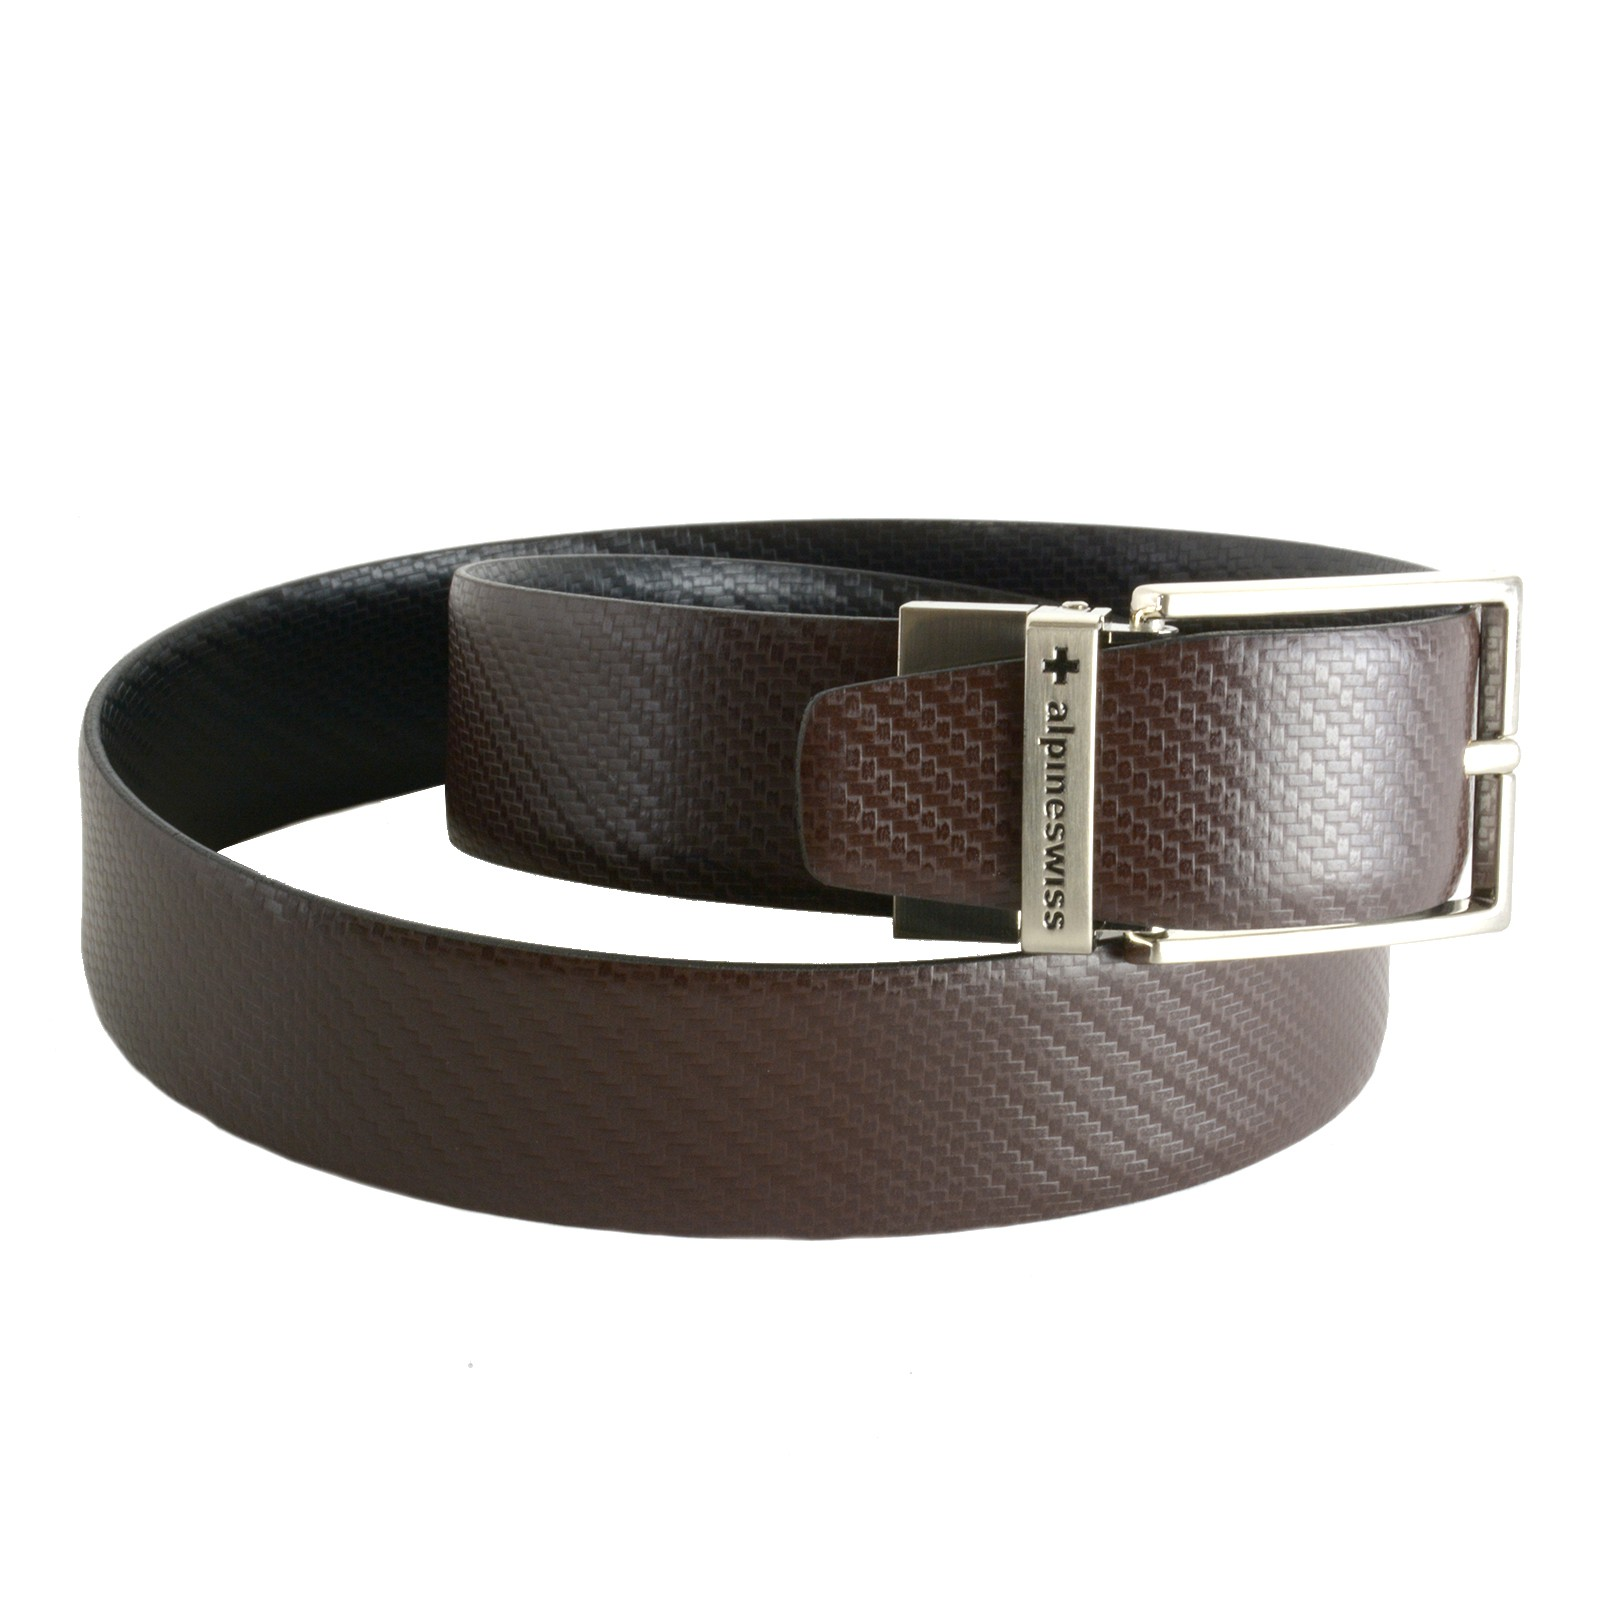 Alpine-Swiss-Mens-Dress-Belt-Reversible-Black-Brown-Leather-Imported-from-Spain thumbnail 13